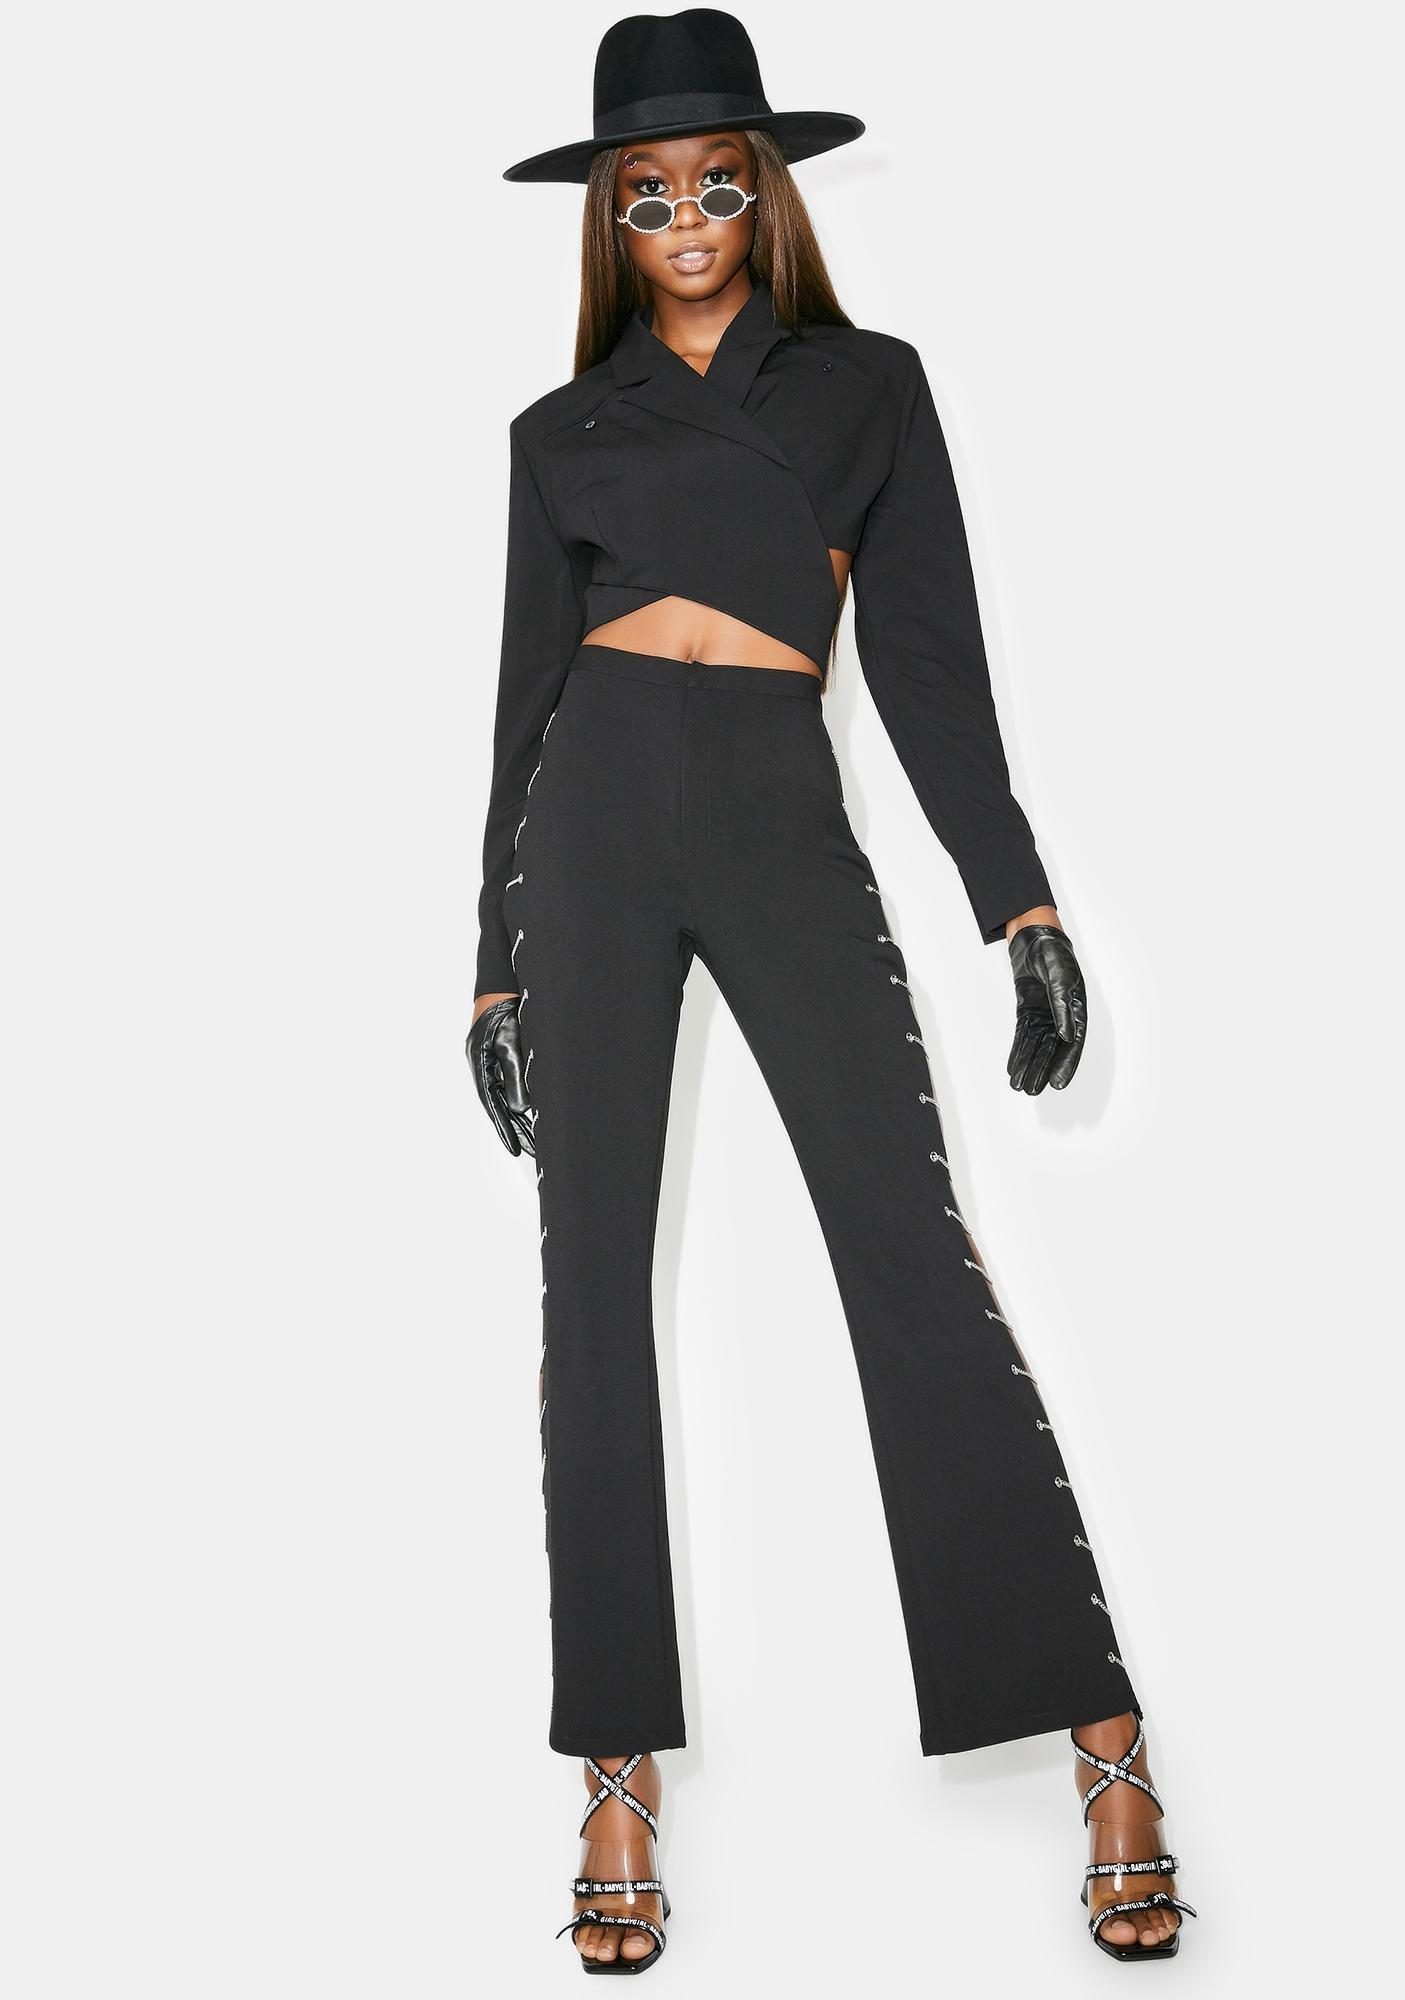 Poster Grl Cut A Deal Chain Pants